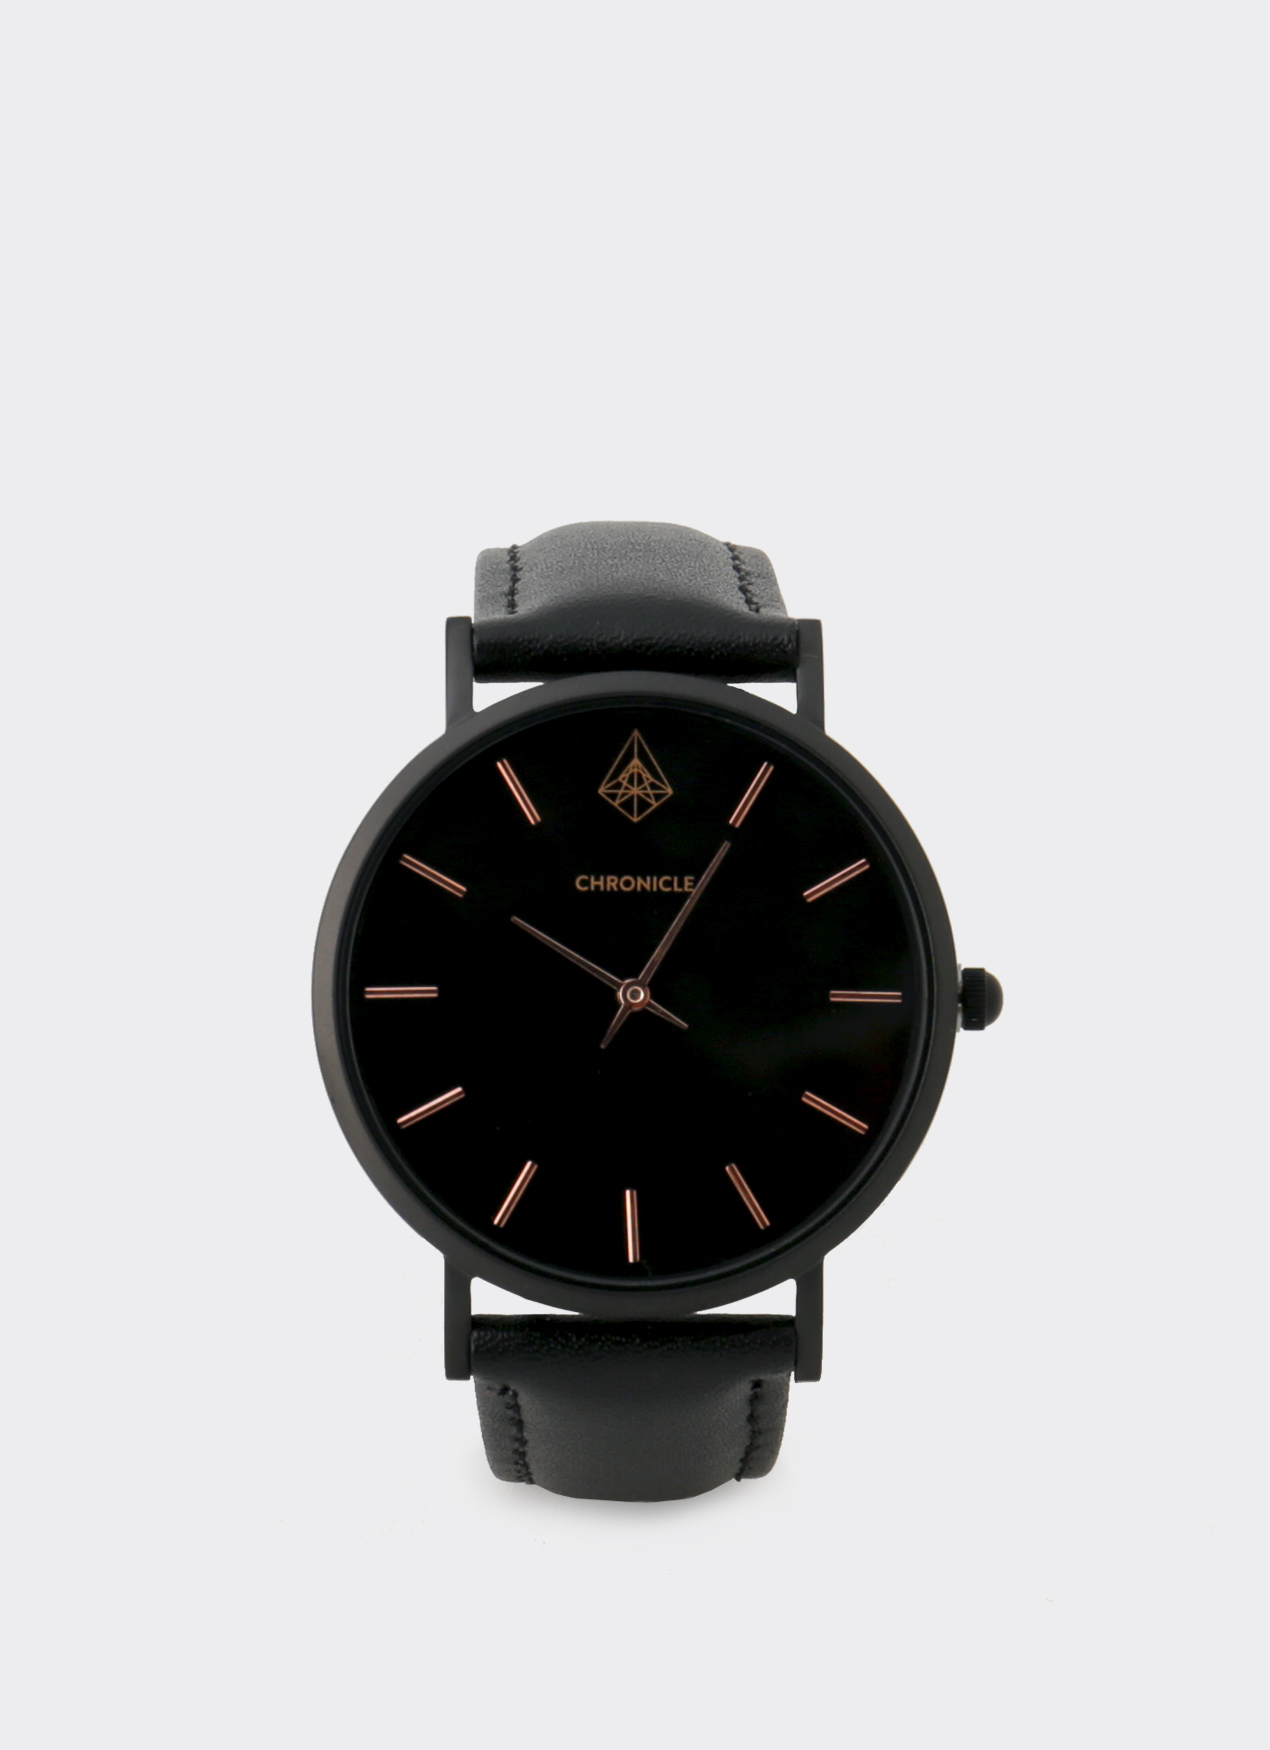 Chronicle Timepiece Black Rose Bouverie 36 mm Watches